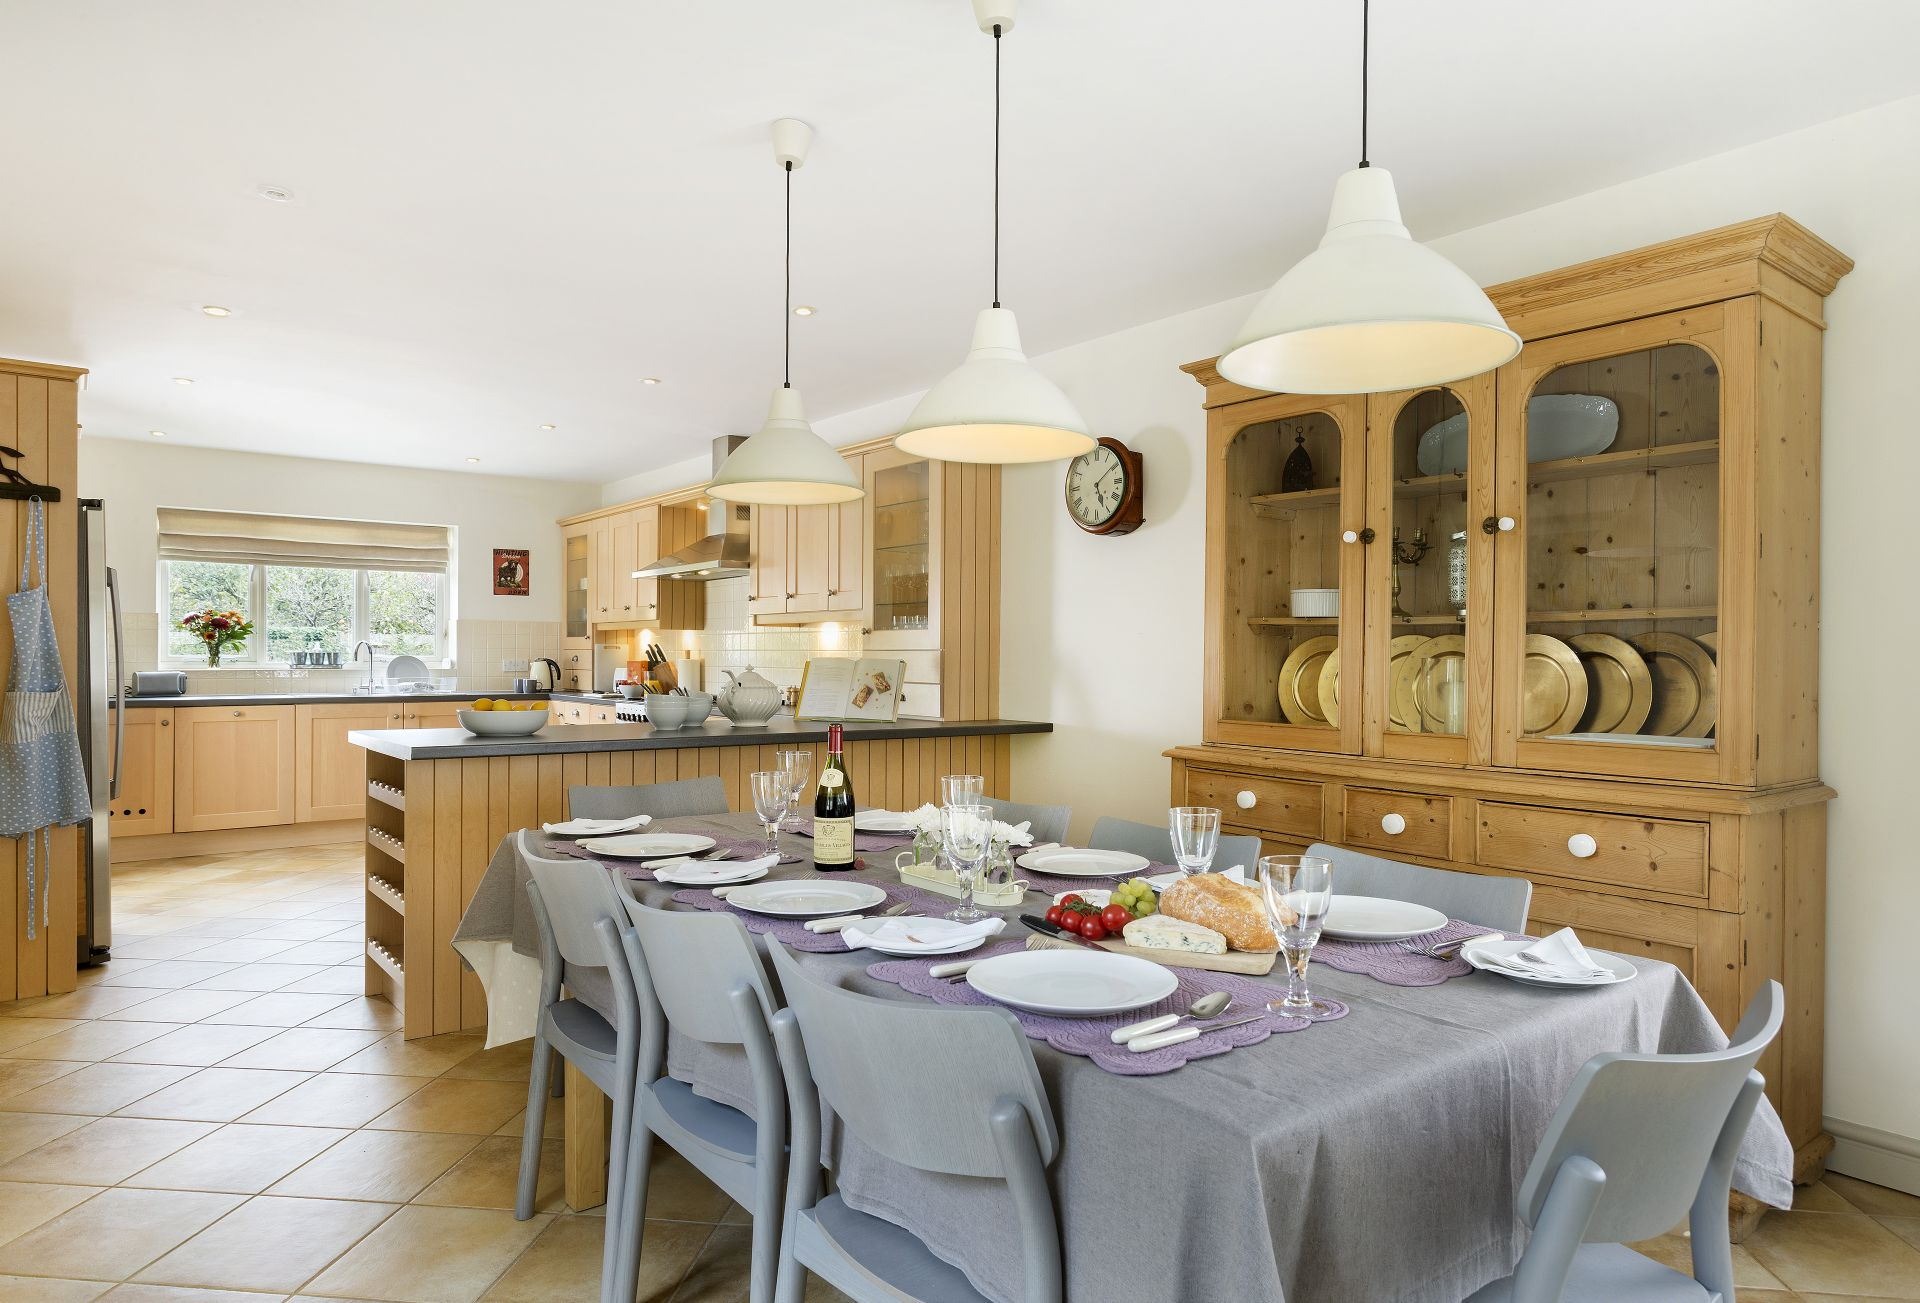 Ground floor: Dining kitchen with table seating six - eight guests